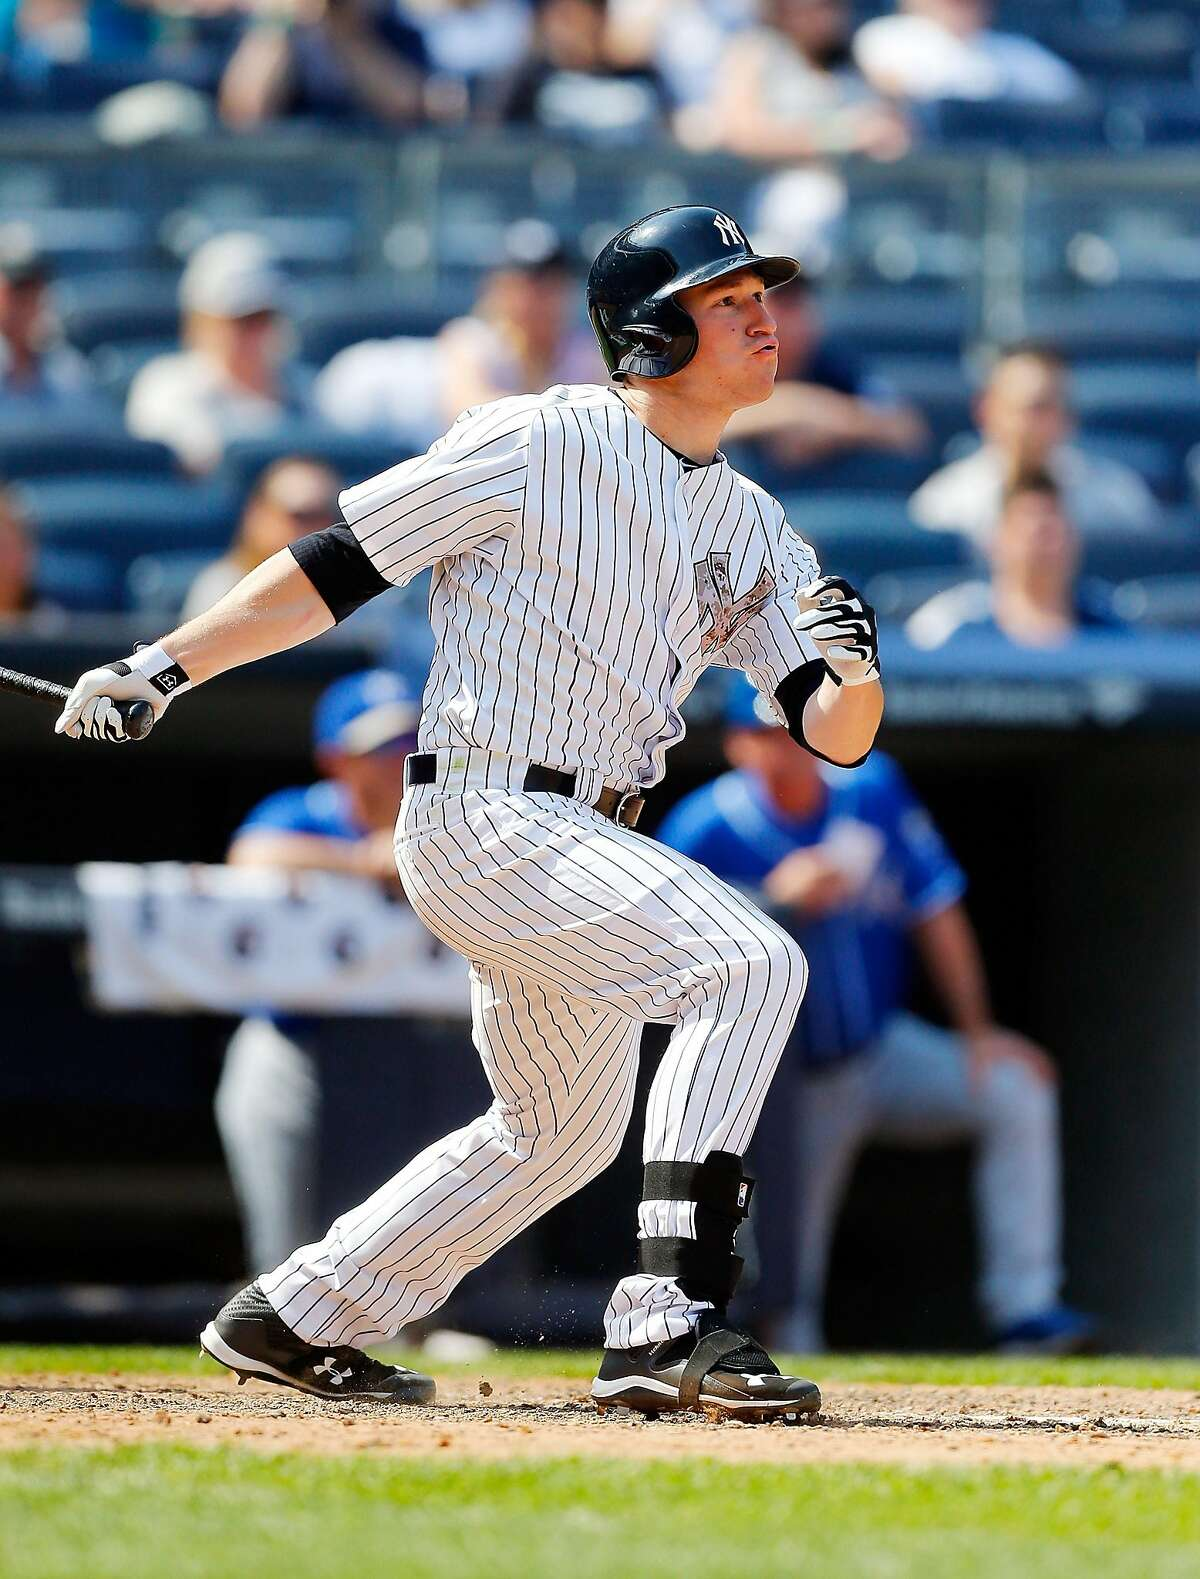 NEW YORK, NY - MAY 25: Slade Heathcott #55 of the New York Yankees follows through on a seventh inning two run home run against the Kansas City Royals at Yankee Stadium on May 25, 2015 in the Bronx borough of New York City. The home run was the first in the major leagues for Heathcott. (Photo by Jim McIsaac/Getty Images)